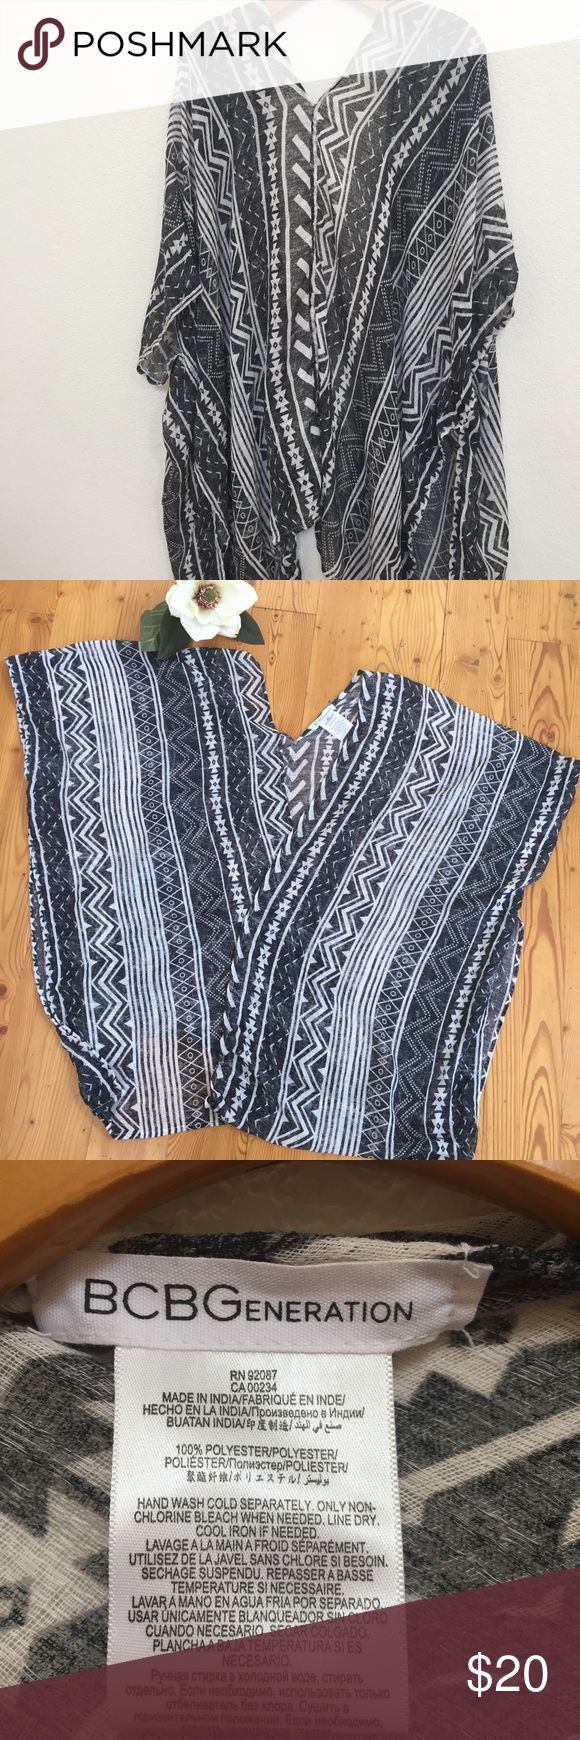 BCBG Aztec prints Shawl Pre owns BCBG Cardigan, For L & XL, black and white Aztec prints, good condition. Beautiful and Light weight cover up. BCBGeneration Sweaters Shrugs & Ponchos